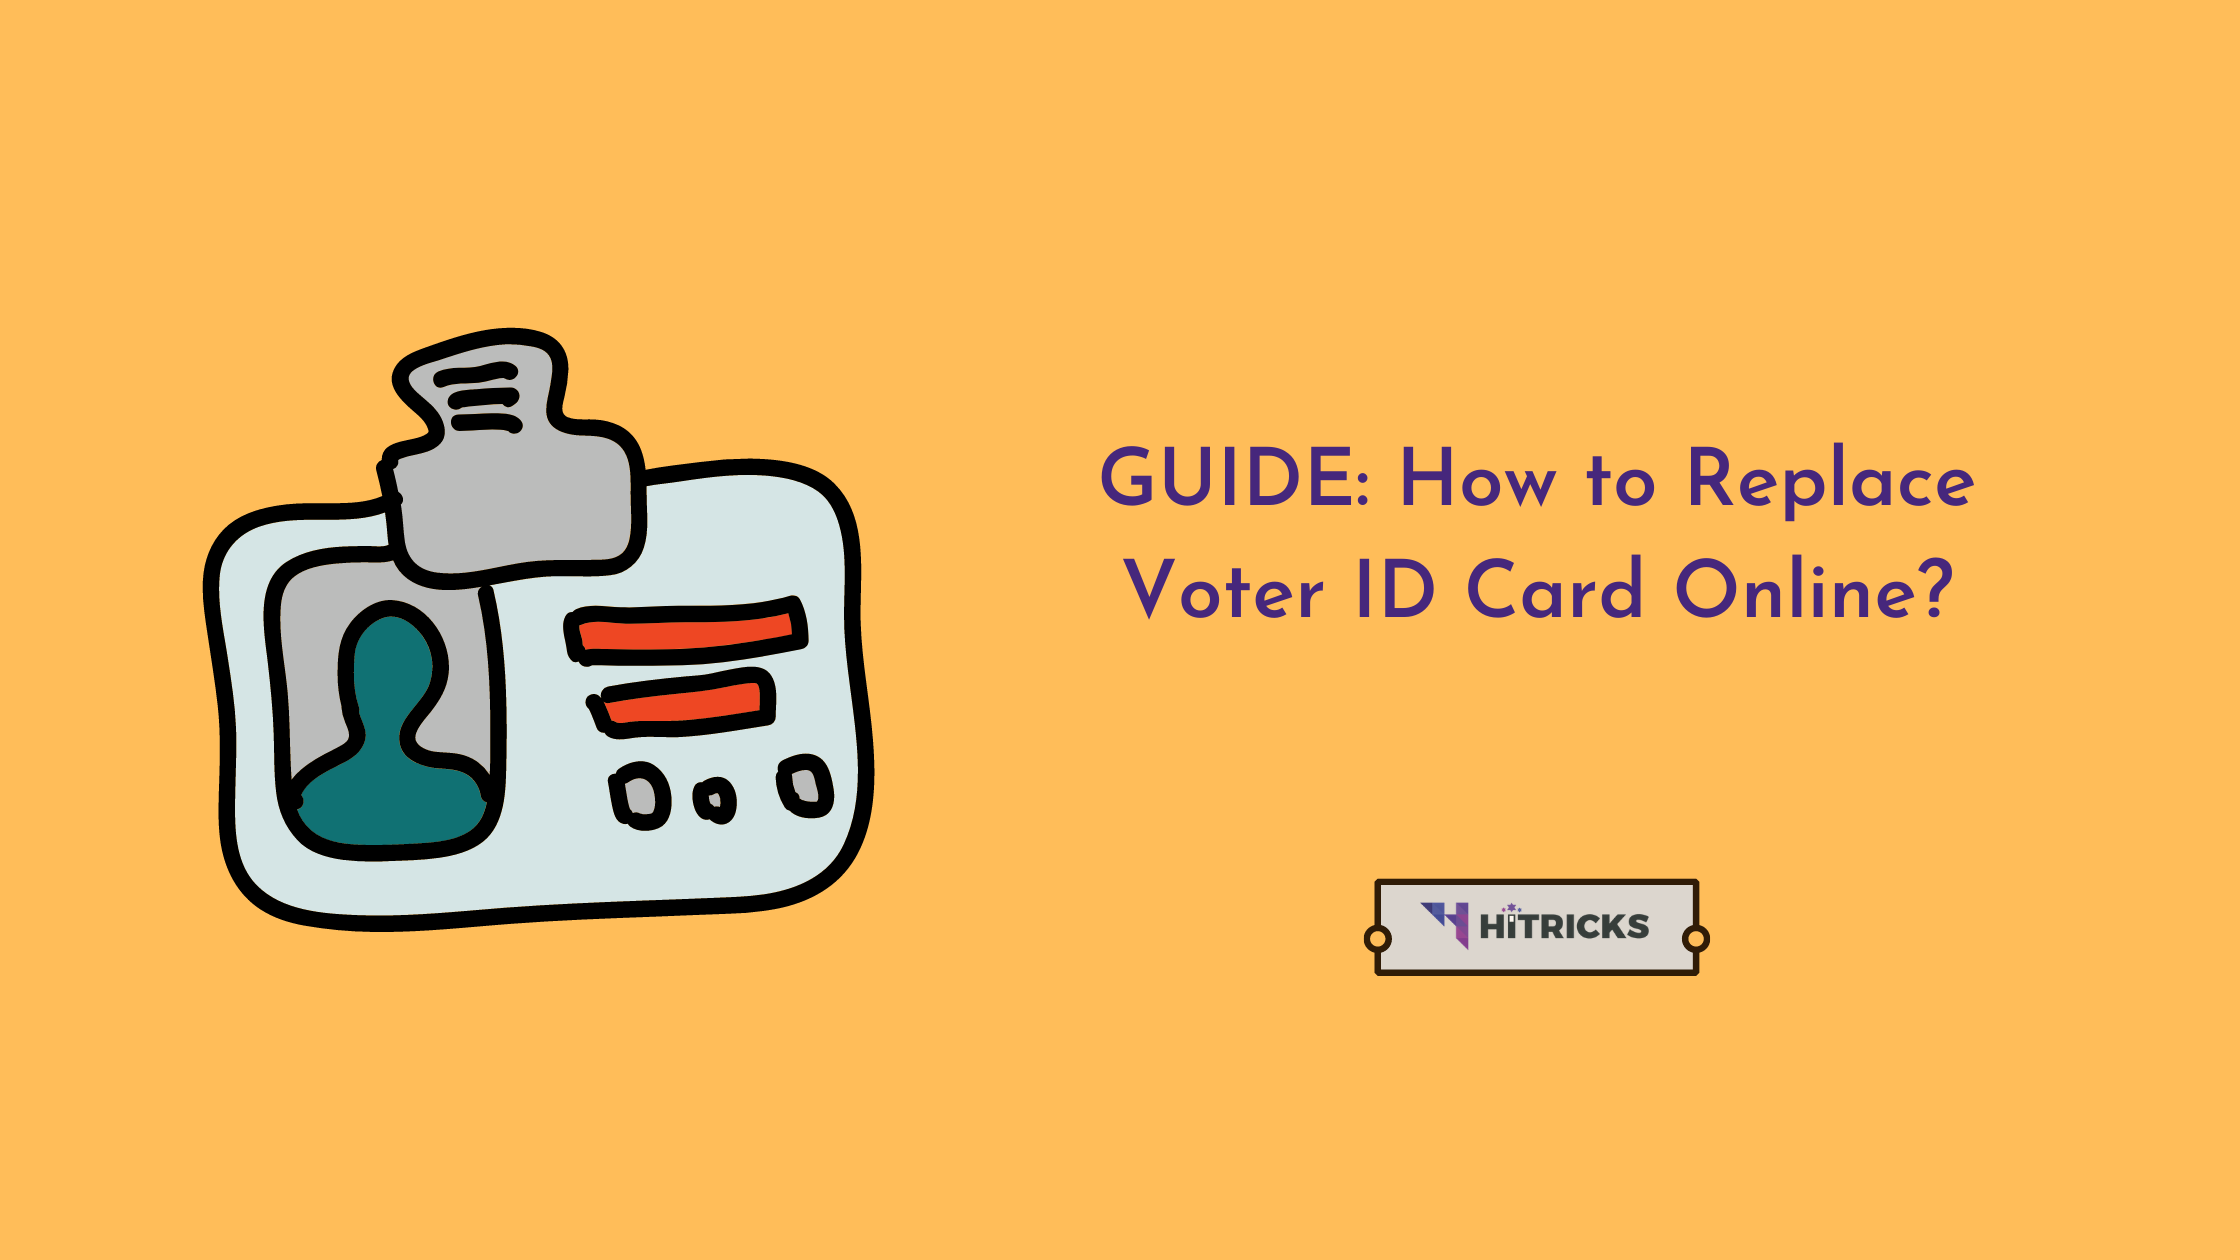 GUIDE: How to Replace Voter ID Card Online?